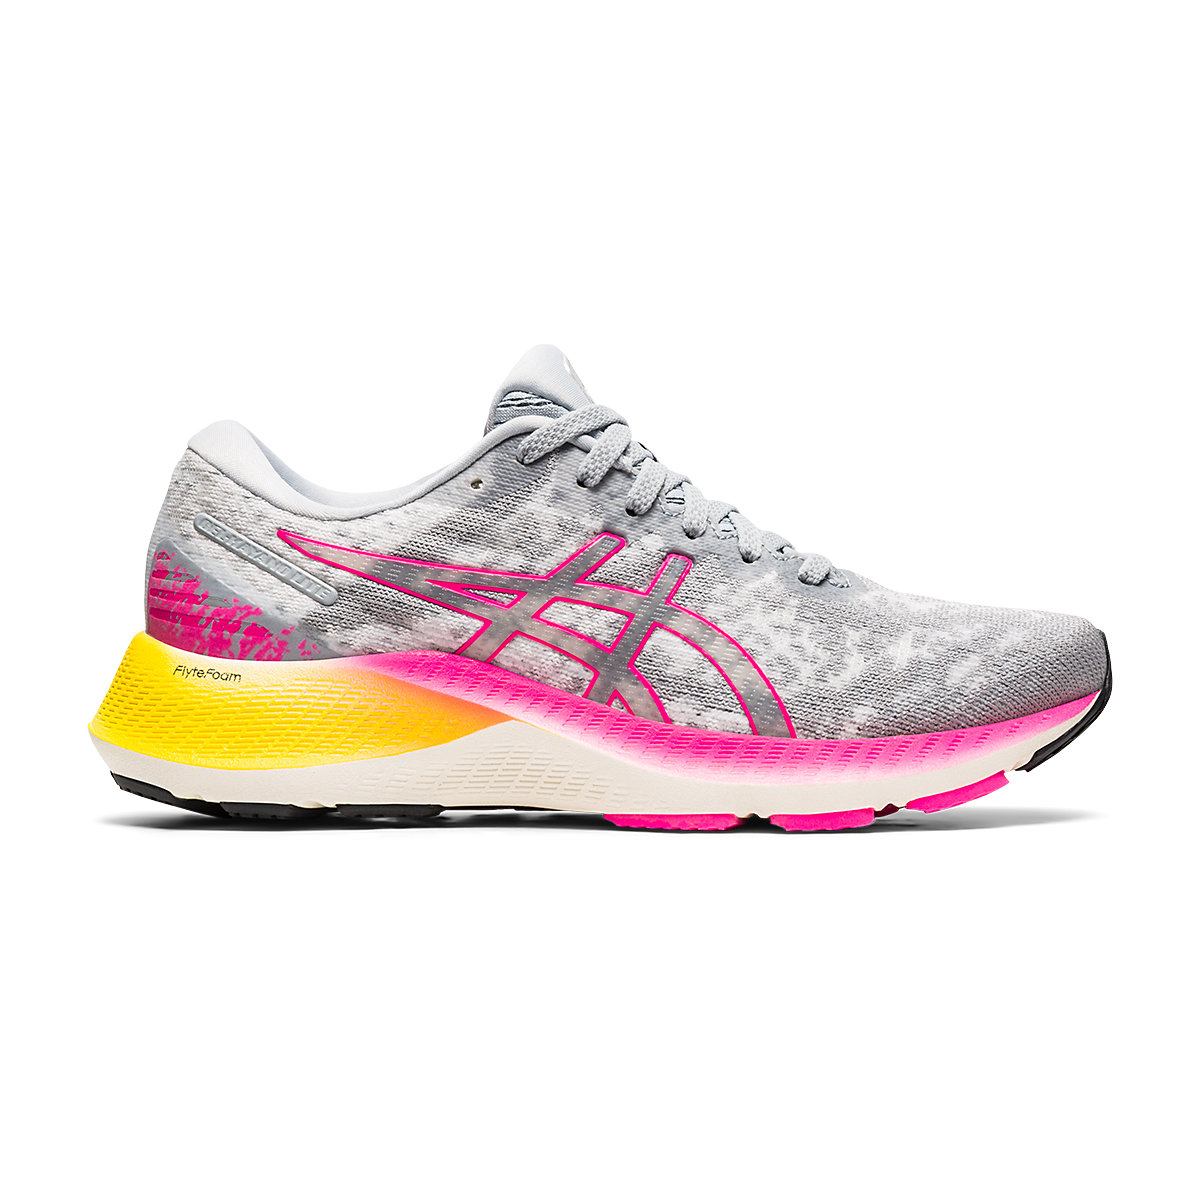 Women's Asics GEL-Kayano Lite Running Shoe - Color: Piedmont Grey/Sheet Rock - Size: 5 - Width: Regular, Piedmont Grey/Sheet Rock, large, image 1